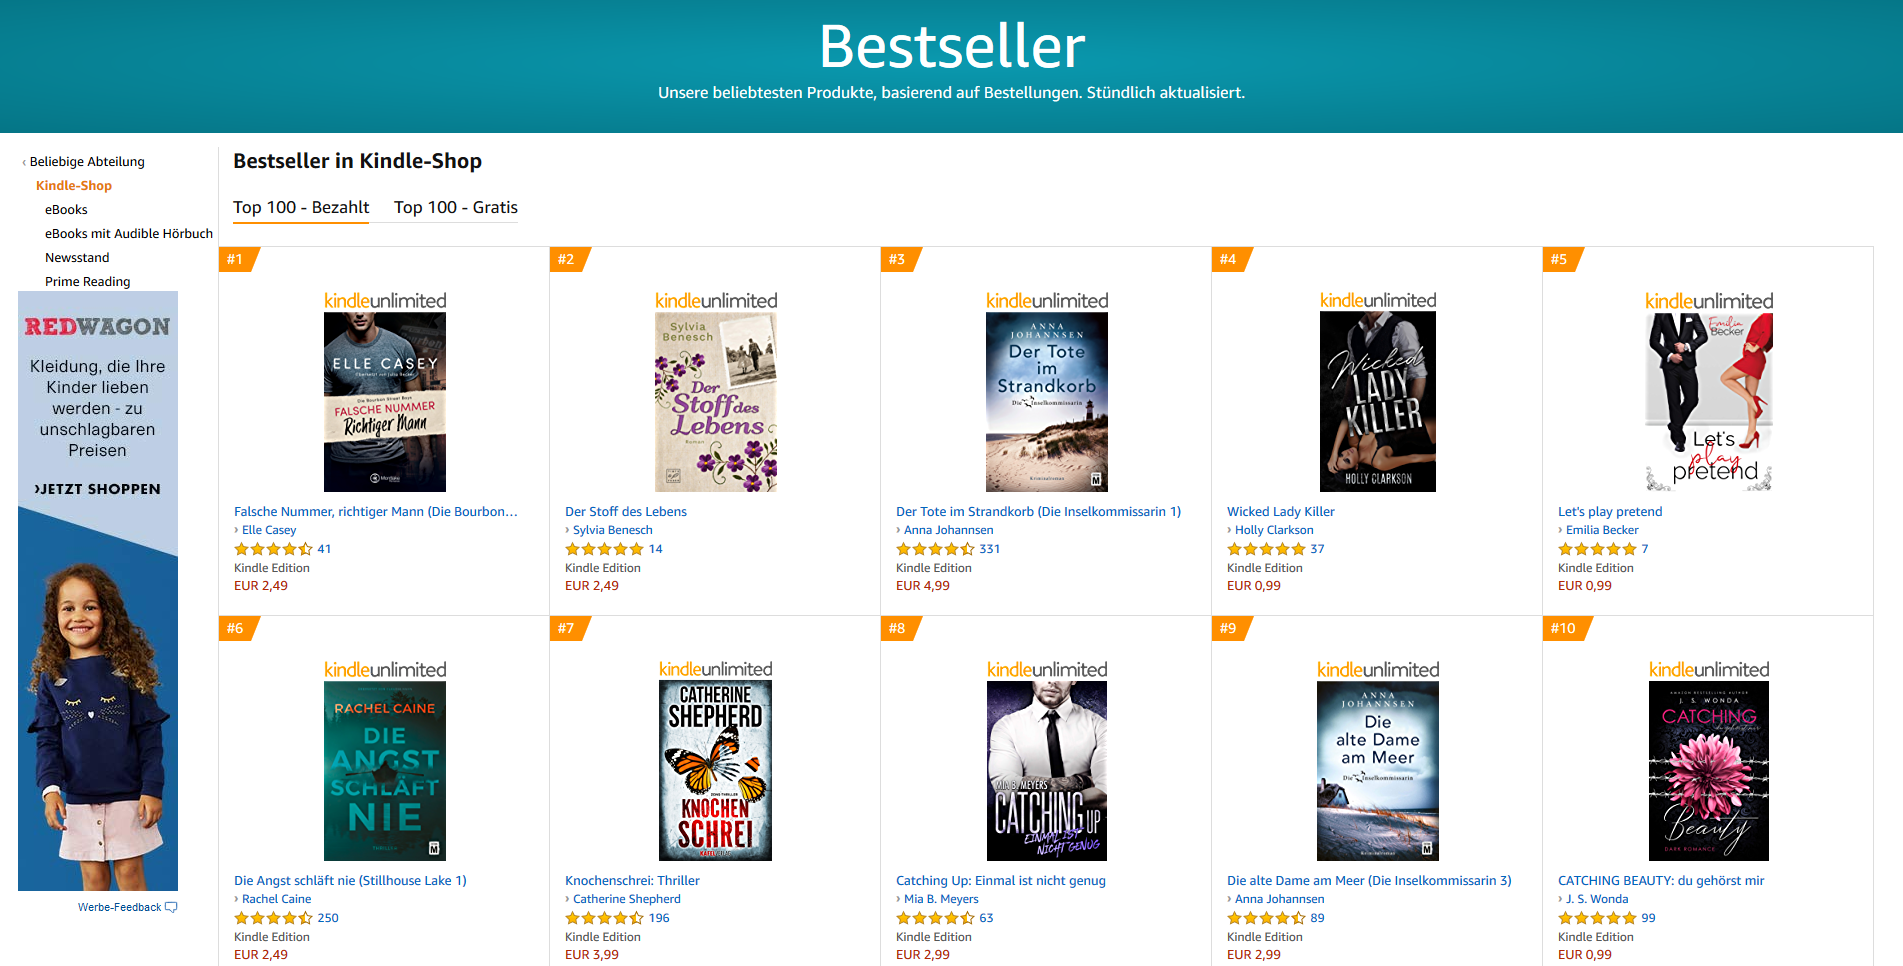 Bestseller in Kindle-Shop Top 100 gratis - bezahlt